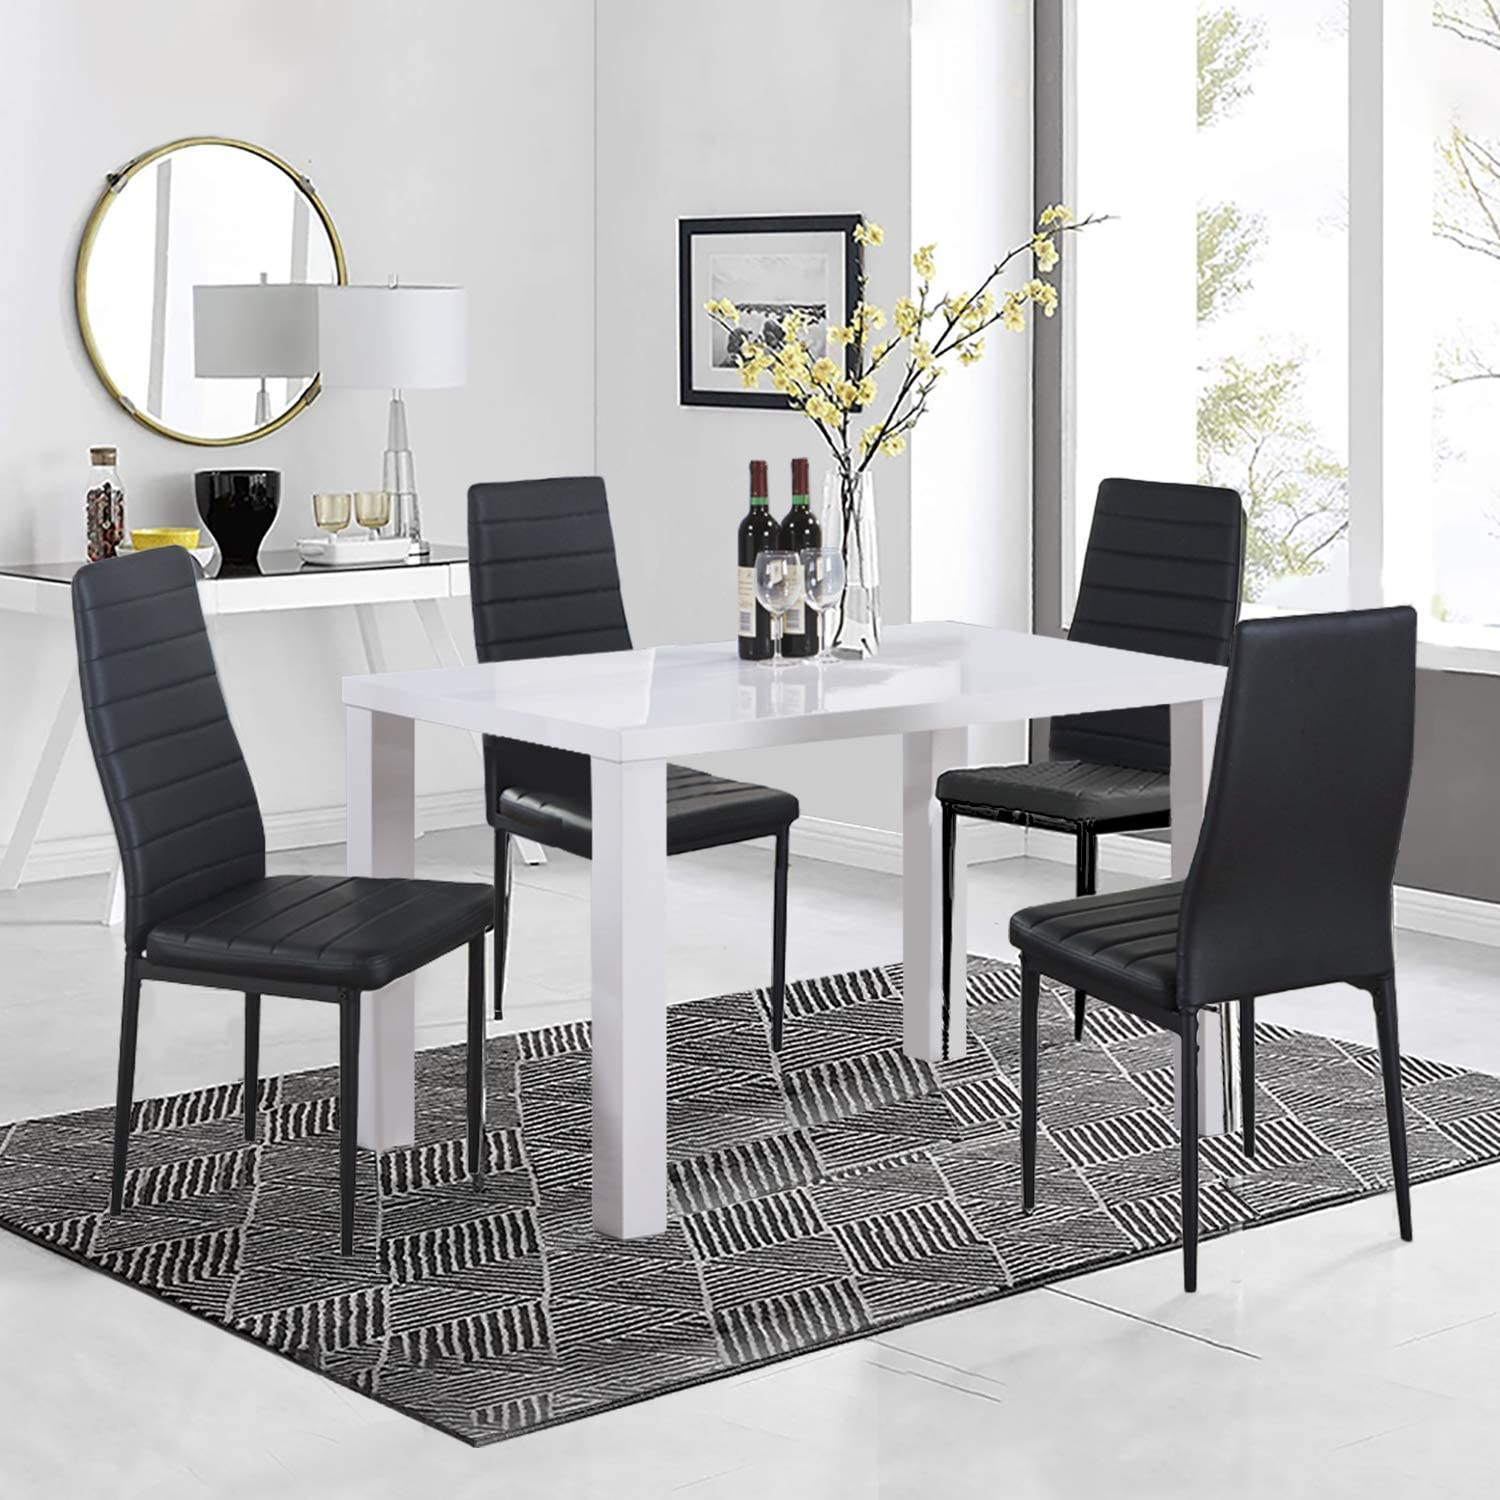 Goldfan High Gloss Dining Table And Chairs Set 4 People Pu Leather Seats Modern Kitchen Table Dining Room Set White Black Amazon Co Uk Kitchen Home